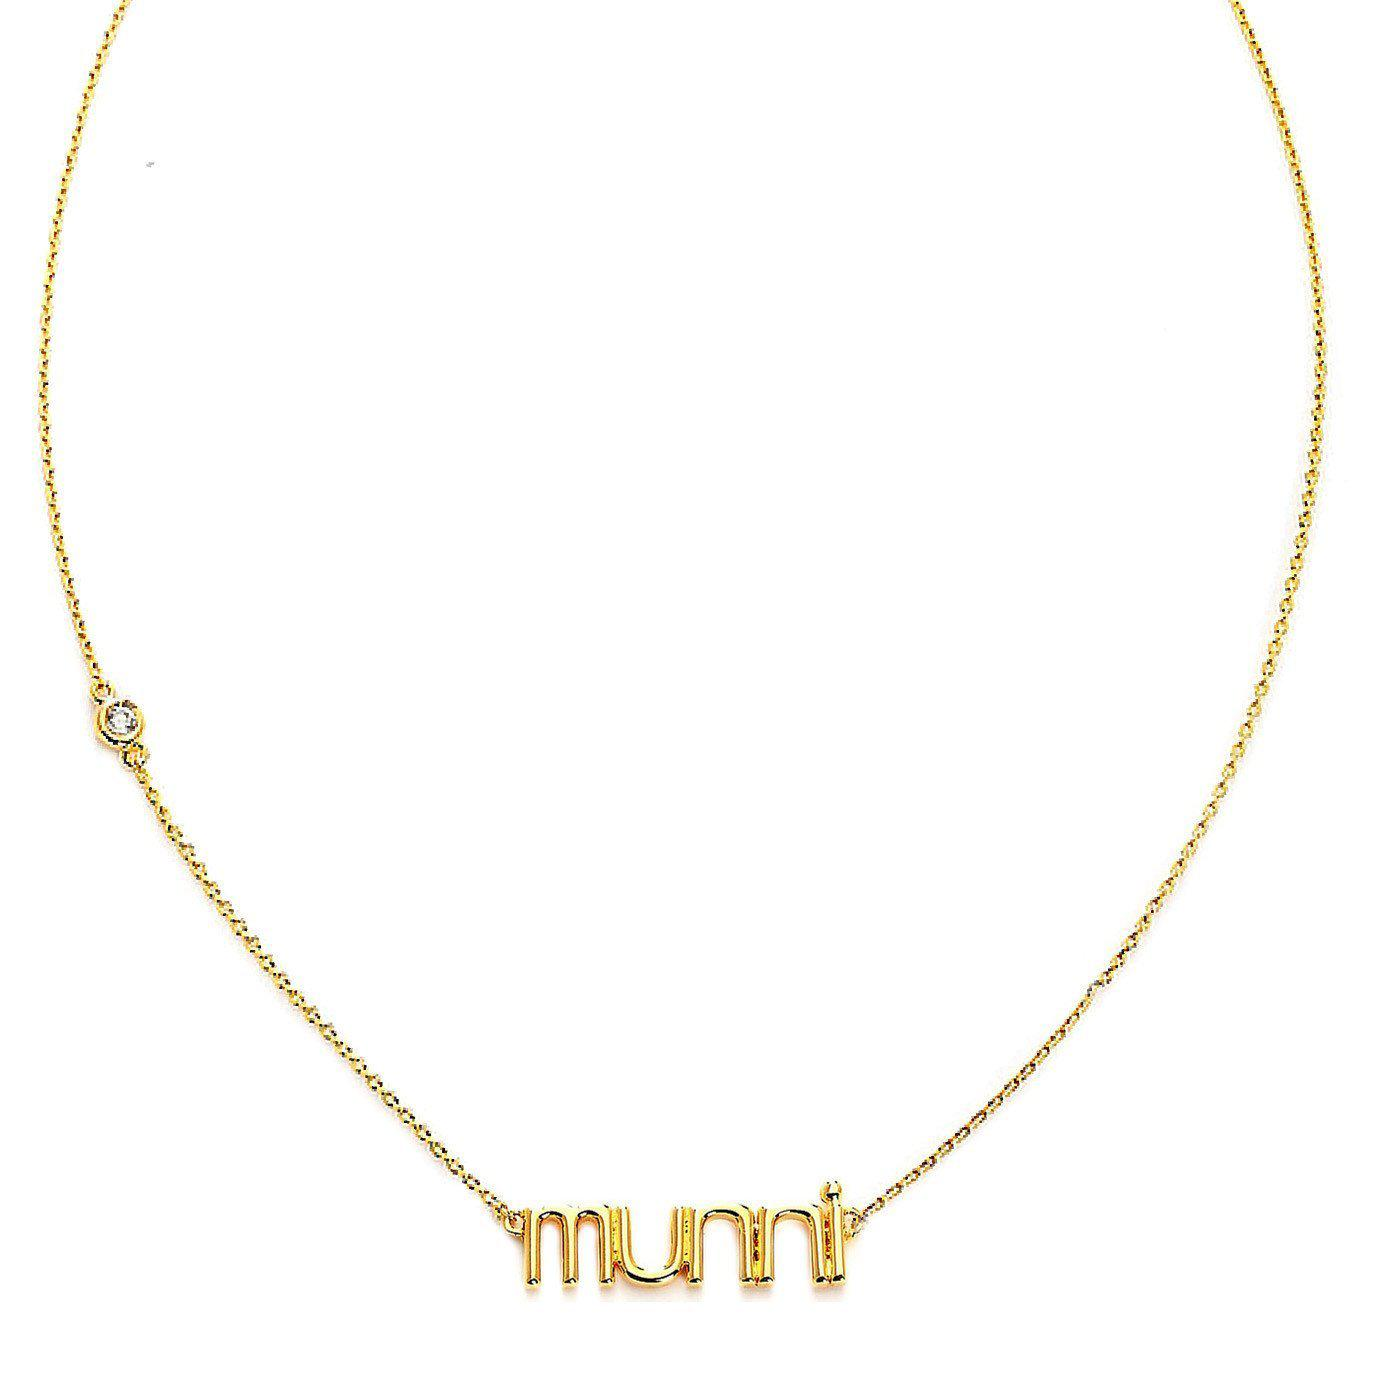 Nickname Munni Necklace-Blinglane